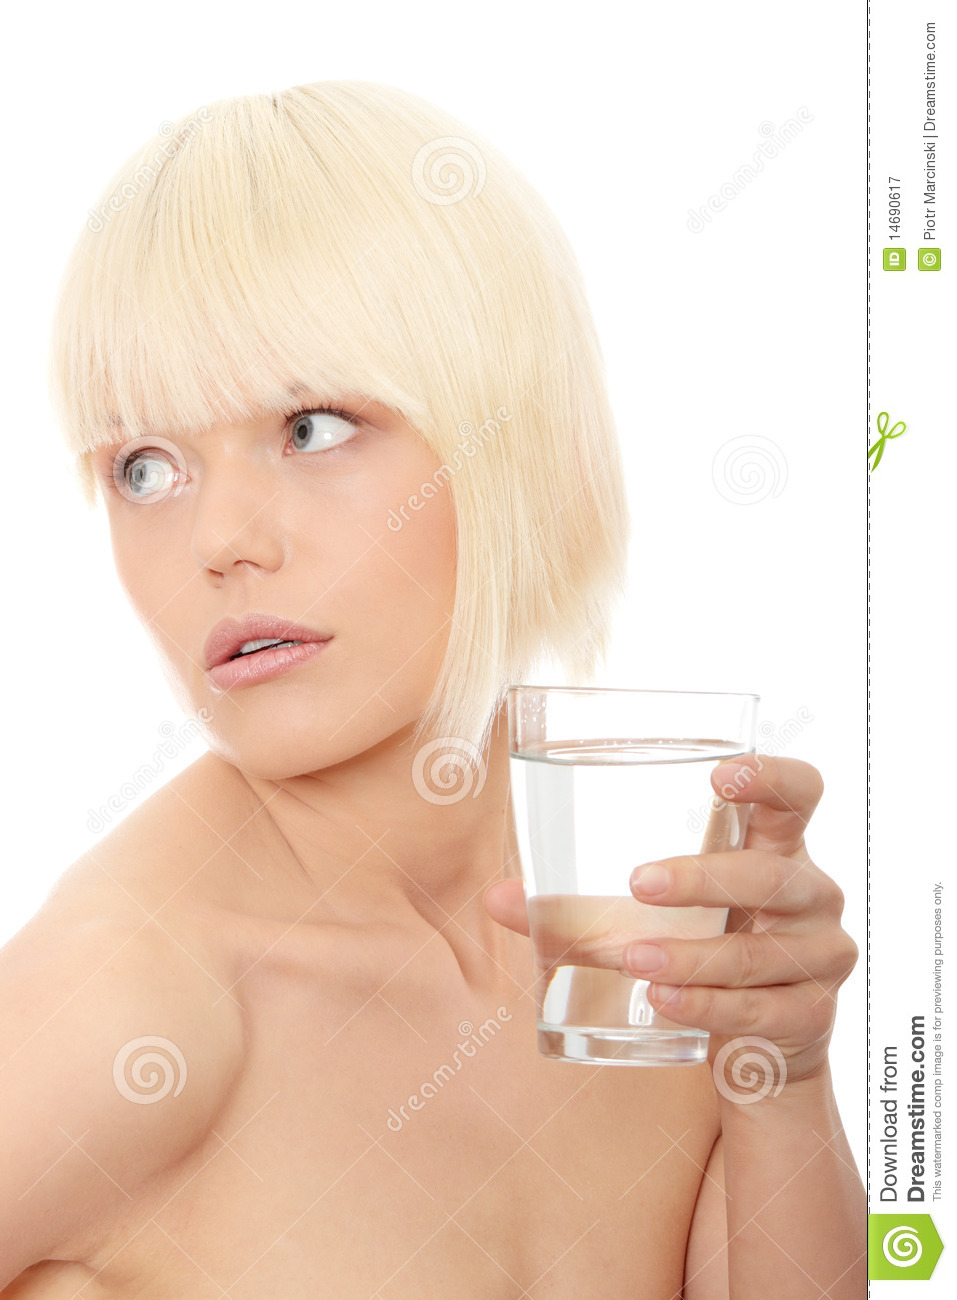 Drinking Glass Clipart